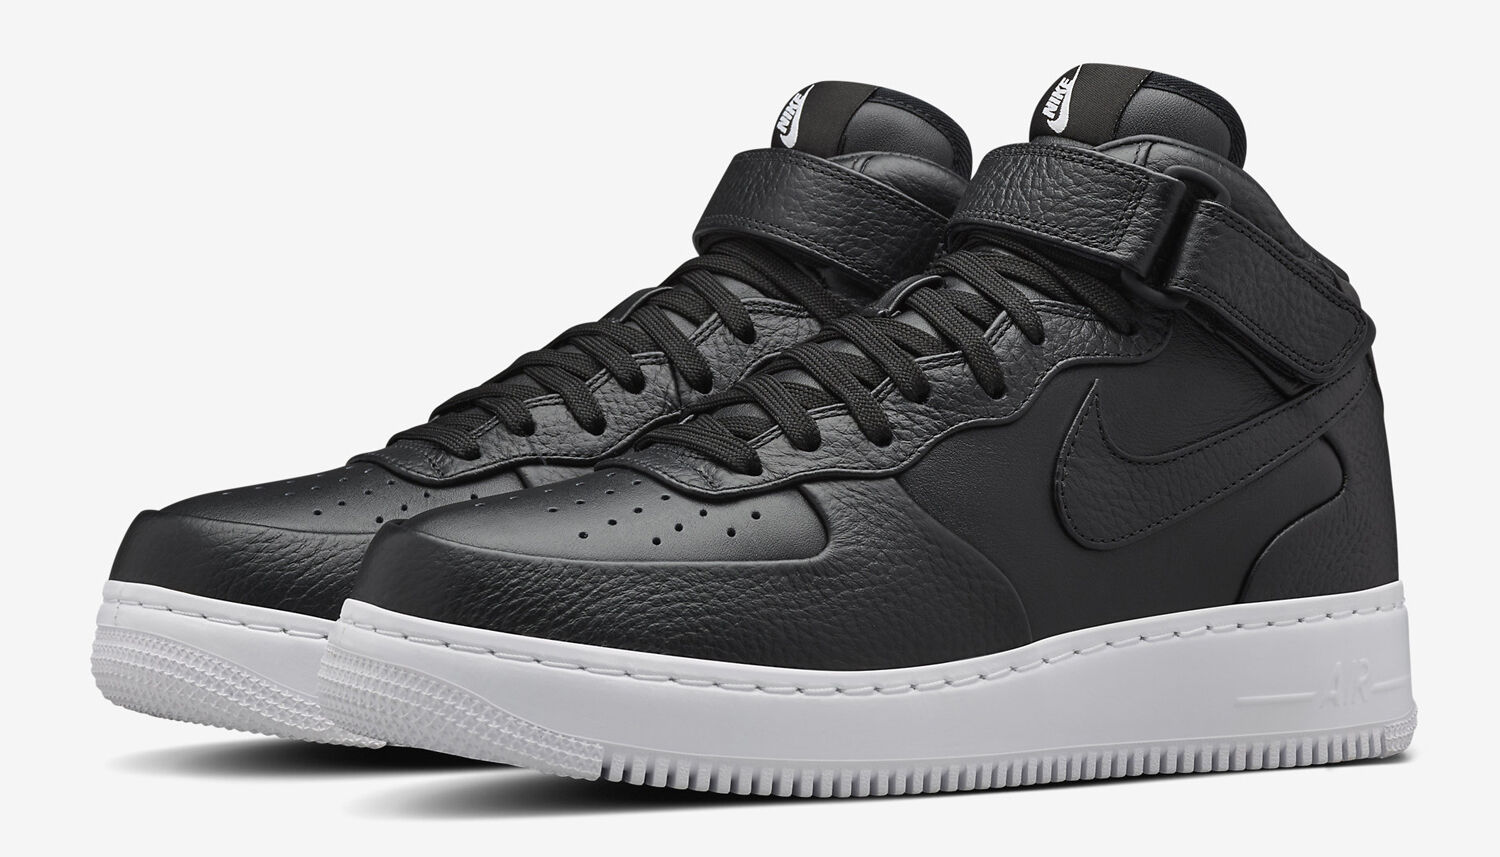 NIKELAB AIRFORCE 1 MID 819677 002 BLACK LEATHER UK 11 EU 46 BNIB